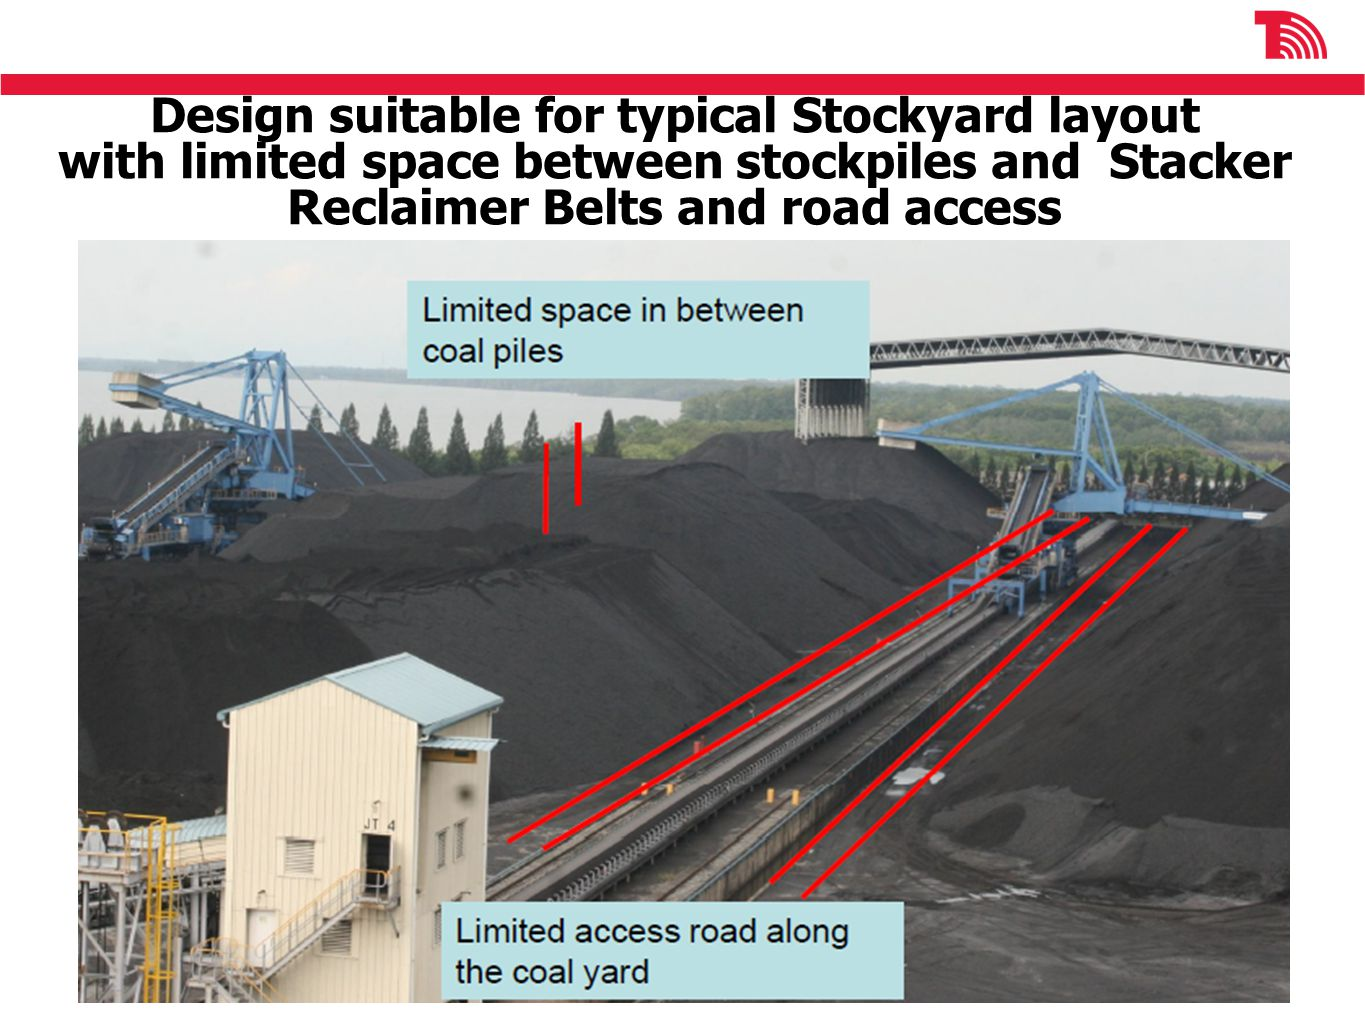 Design suitable for typical Stockyard layout with limited space between stockpiles and Stacker Reclaimer Belts and road access